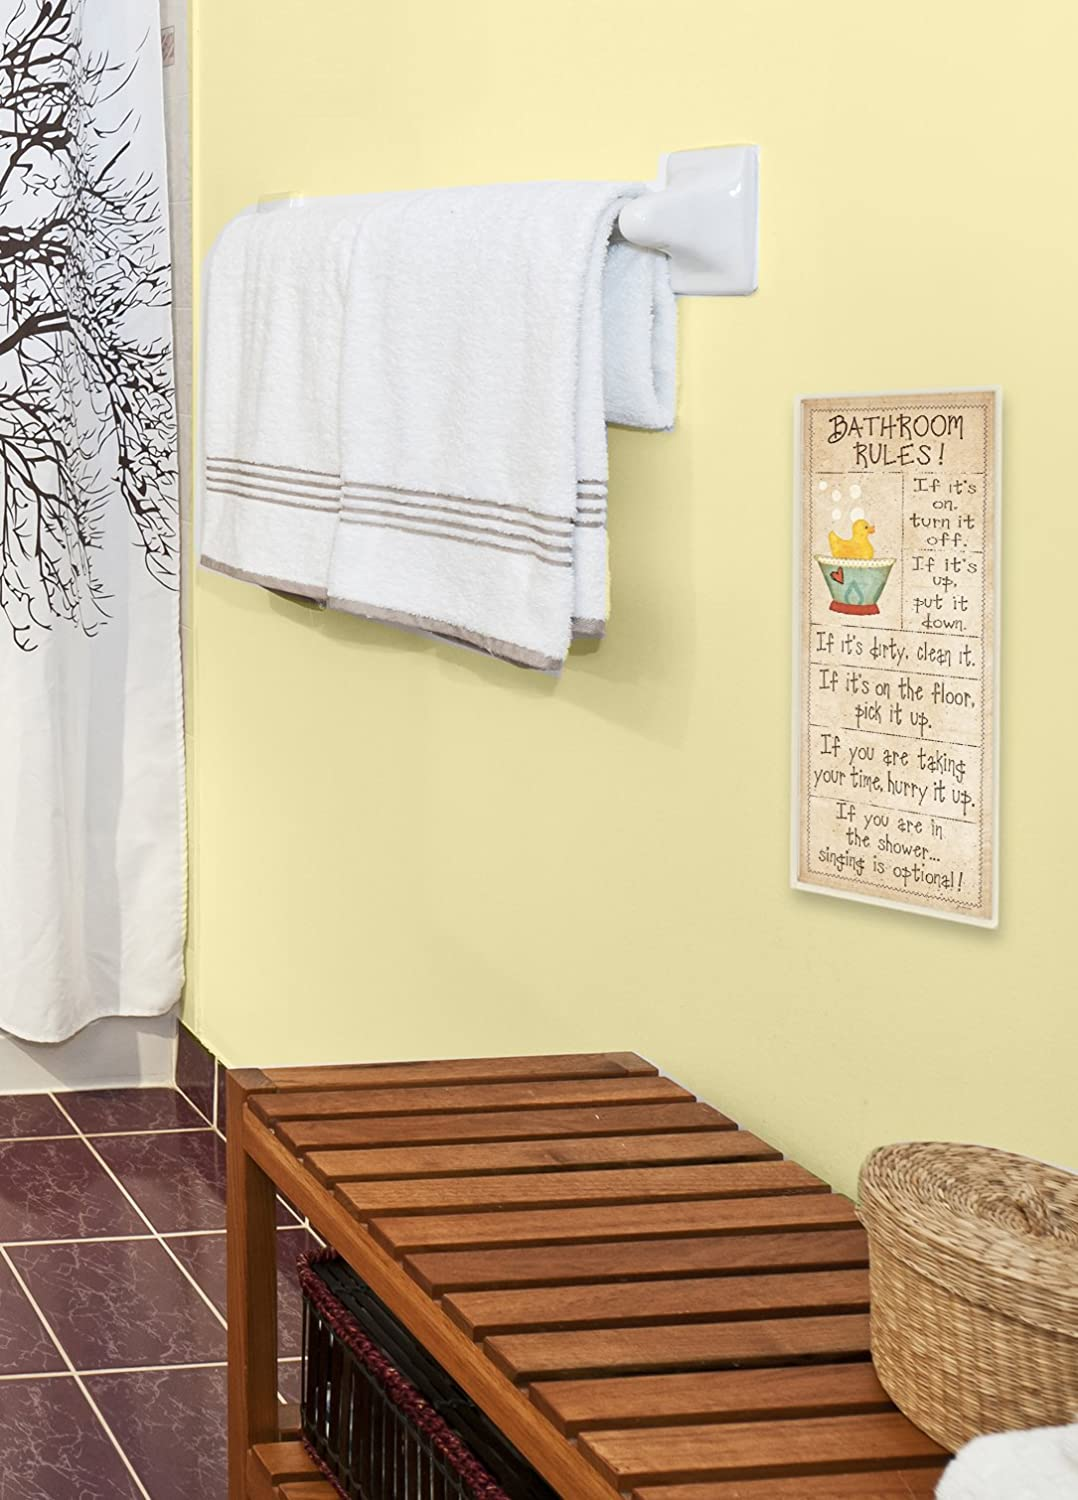 Proudly Made in USA The Stupell Home Décor Collection wrp-1062 stupell;typography;rules;neutral;bath;theme;quote;rubber;duck;brown;tan;words;sign The Stupell Home D/écor Collection Bathroom Rules Rubber Ducky Tall Bathroom Wall Plaque 7 x 0.5 x 17